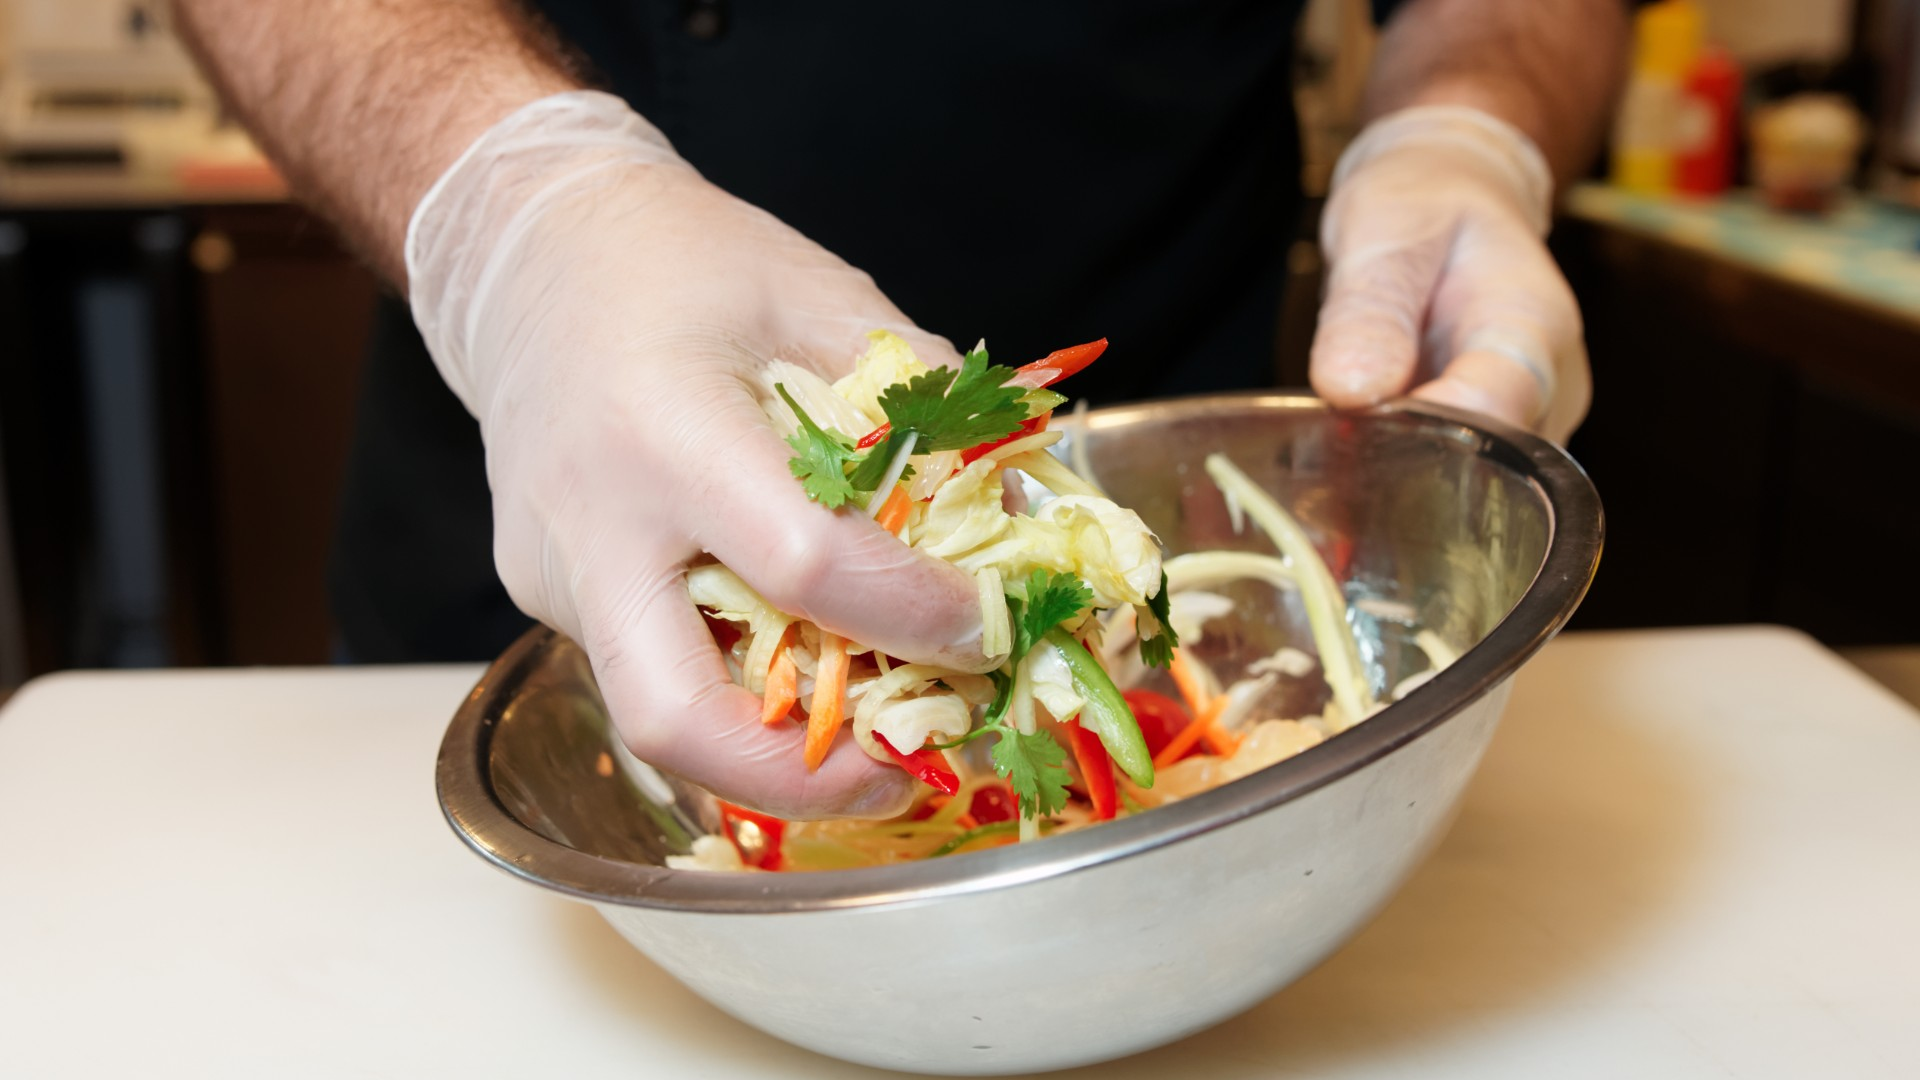 A worker wearing gloves mixes a salad in this file photo. (Getty images)